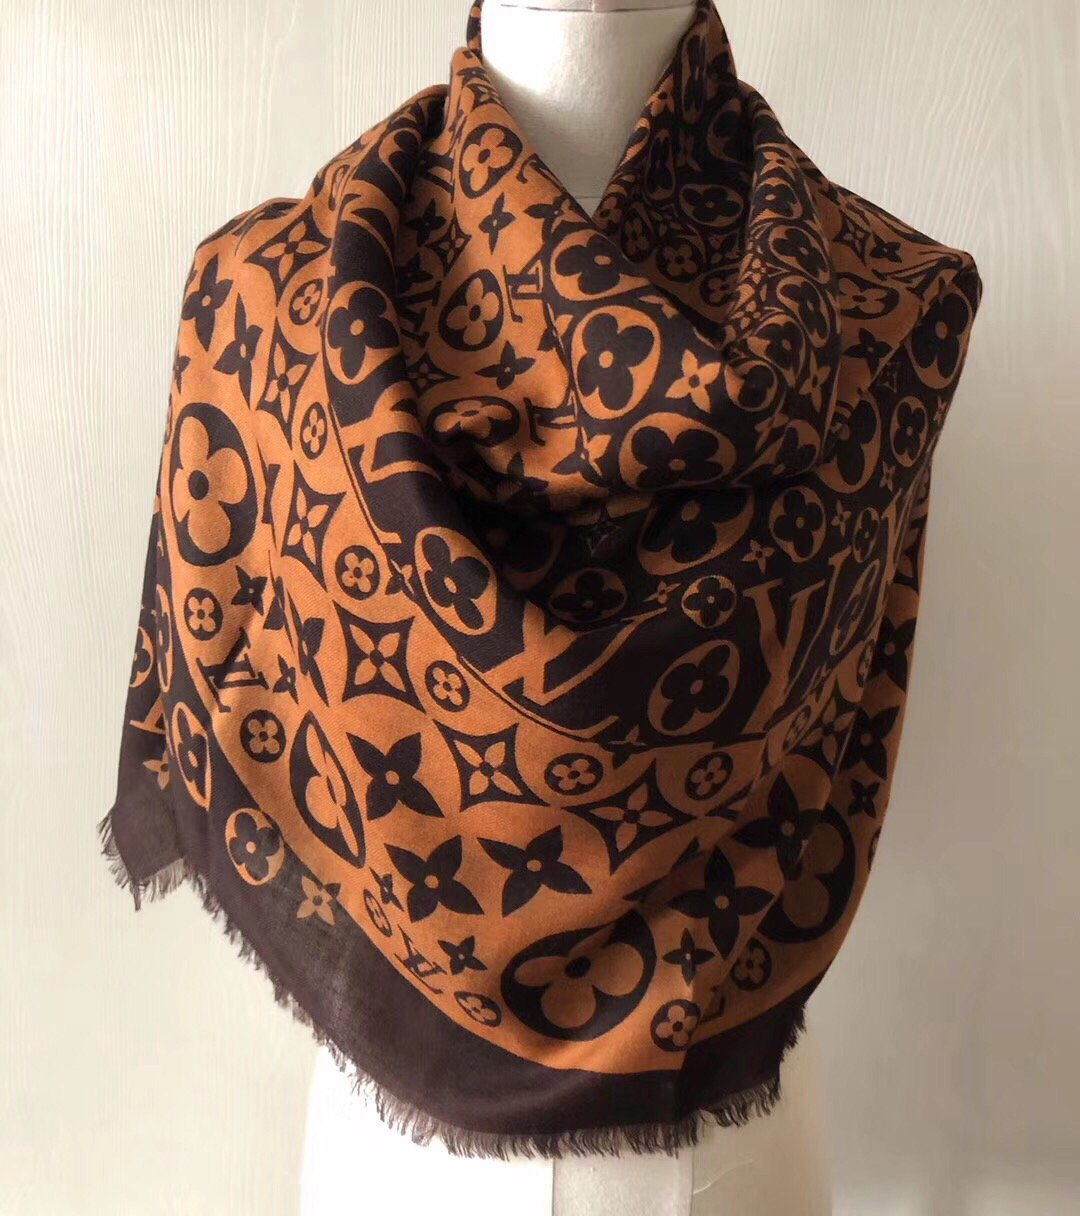 Replica Louis Vuitton Women Scarf 0038